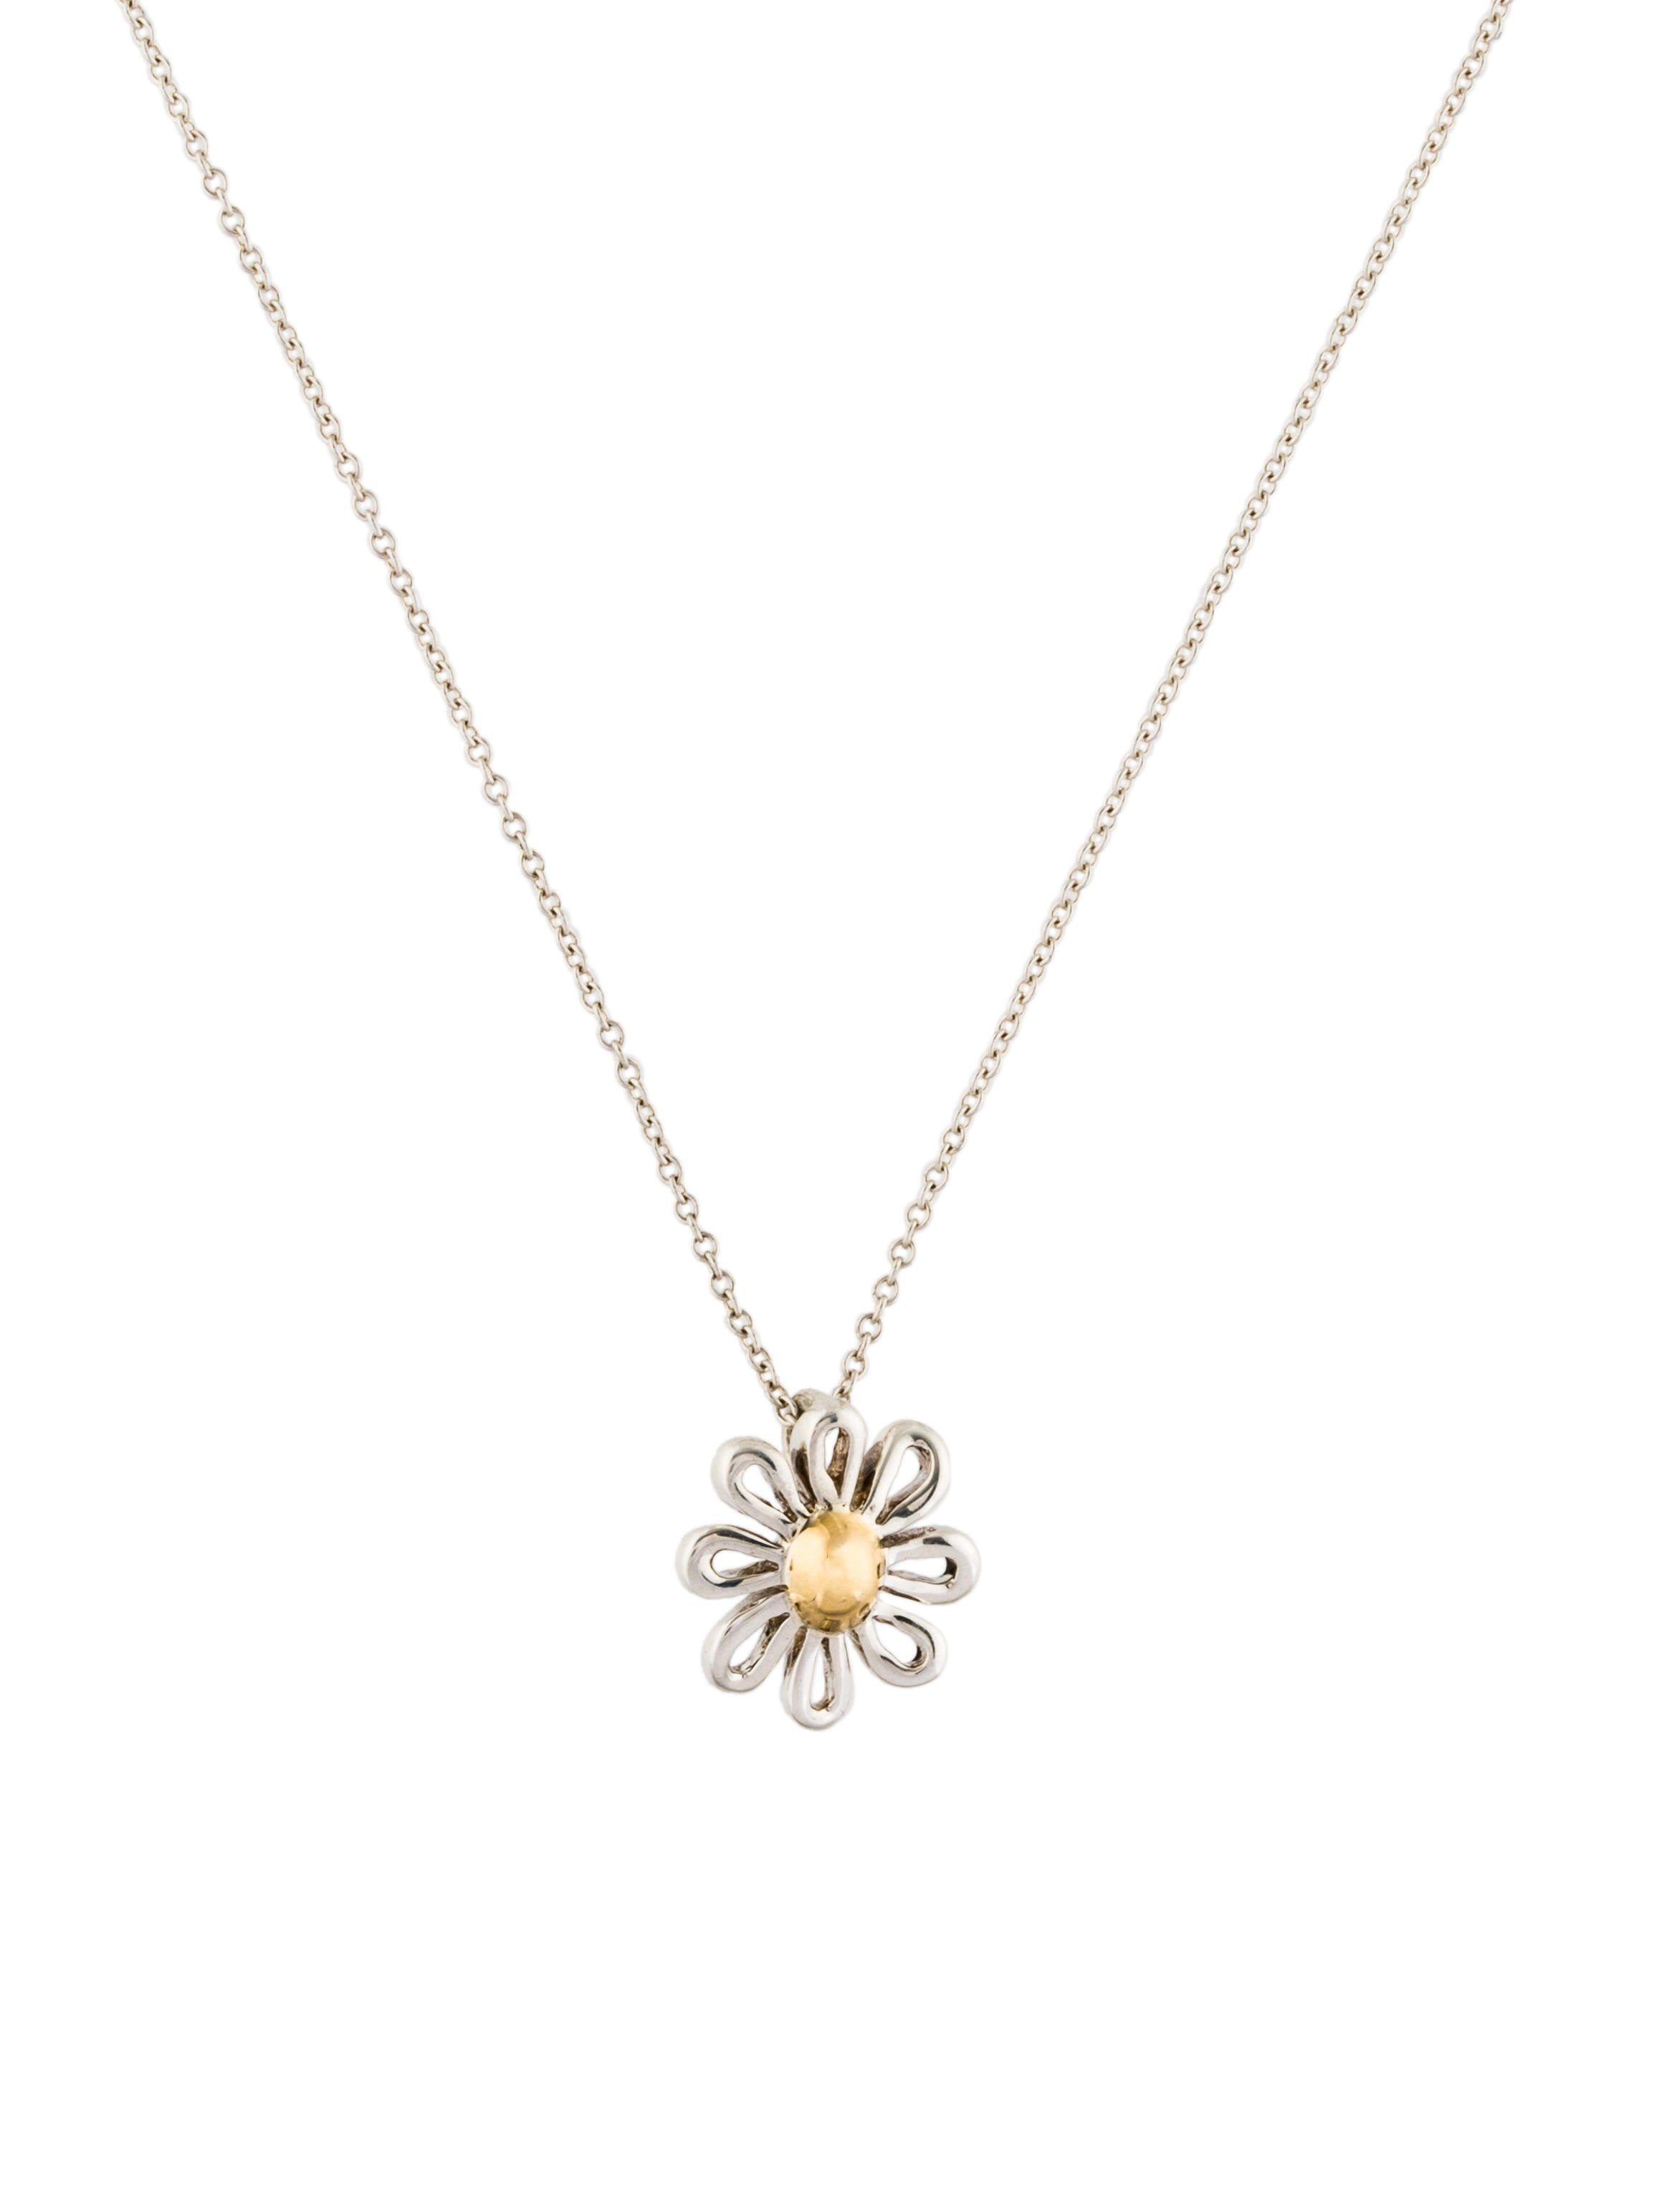 pendant njamsterdam jewelry daisy and en makers silver necklace flower